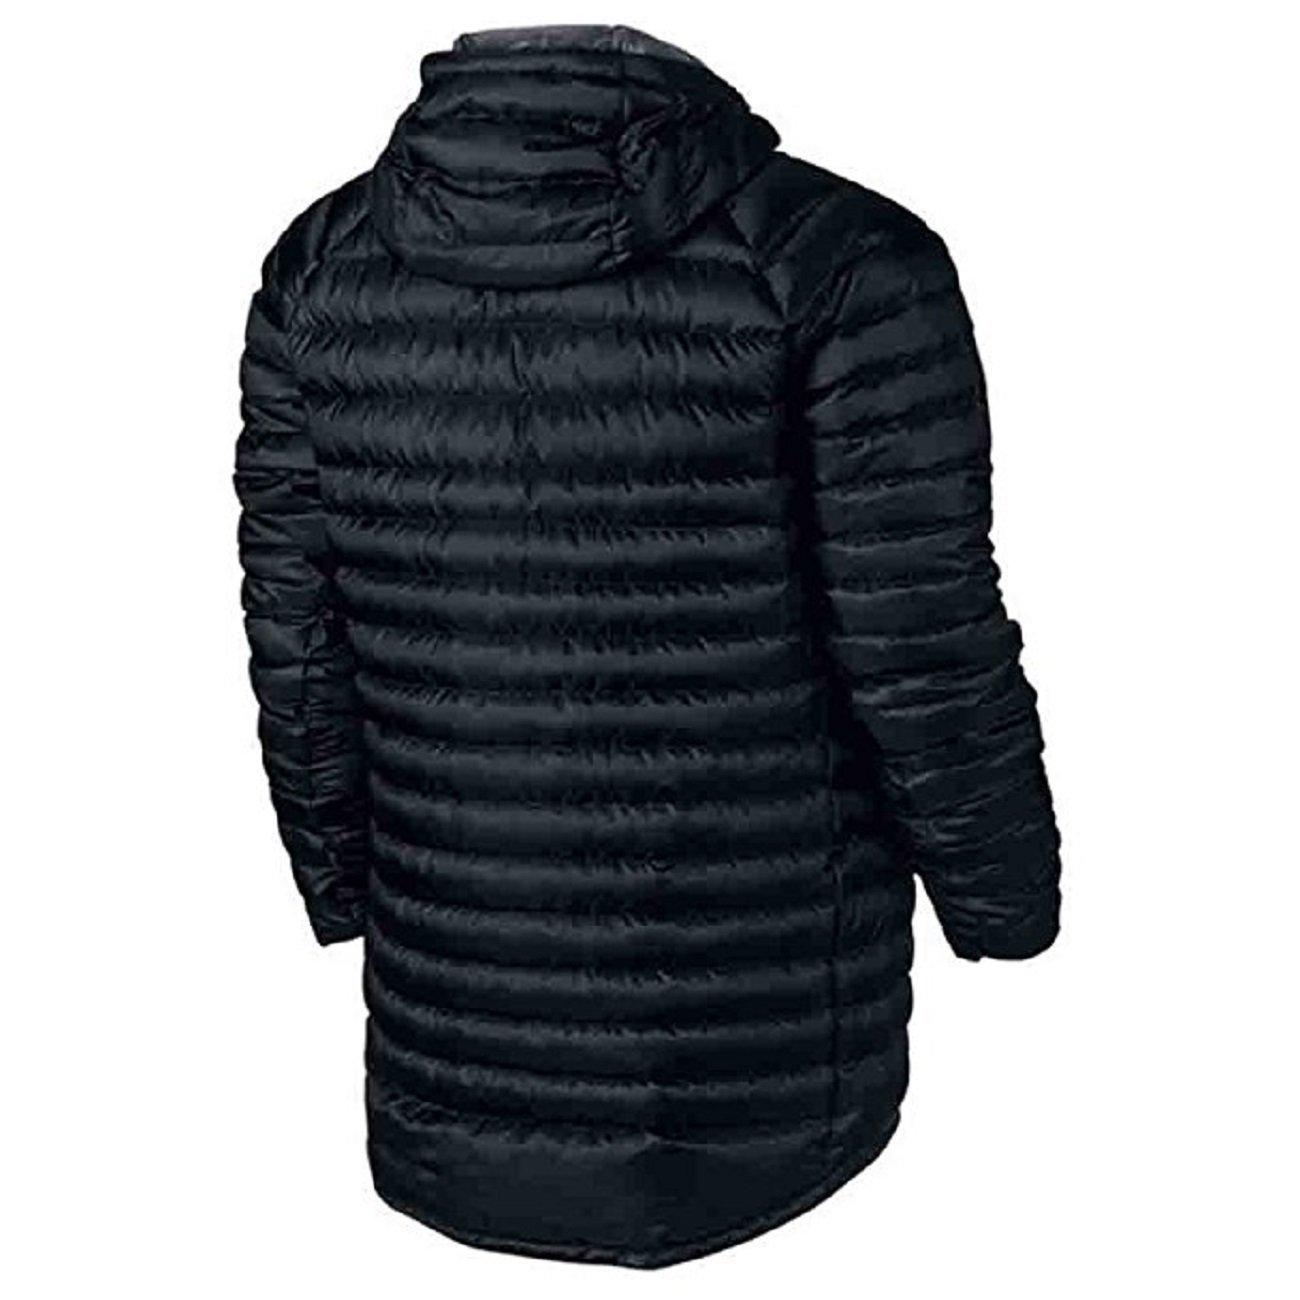 8a58282141fd6 Nike GUILD 550 DOWN HOODED MEN JACKET WINTER SPORT DOWN QUILTED JACKET  ,BLACK (SMALL): Amazon.co.uk: Toys & Games